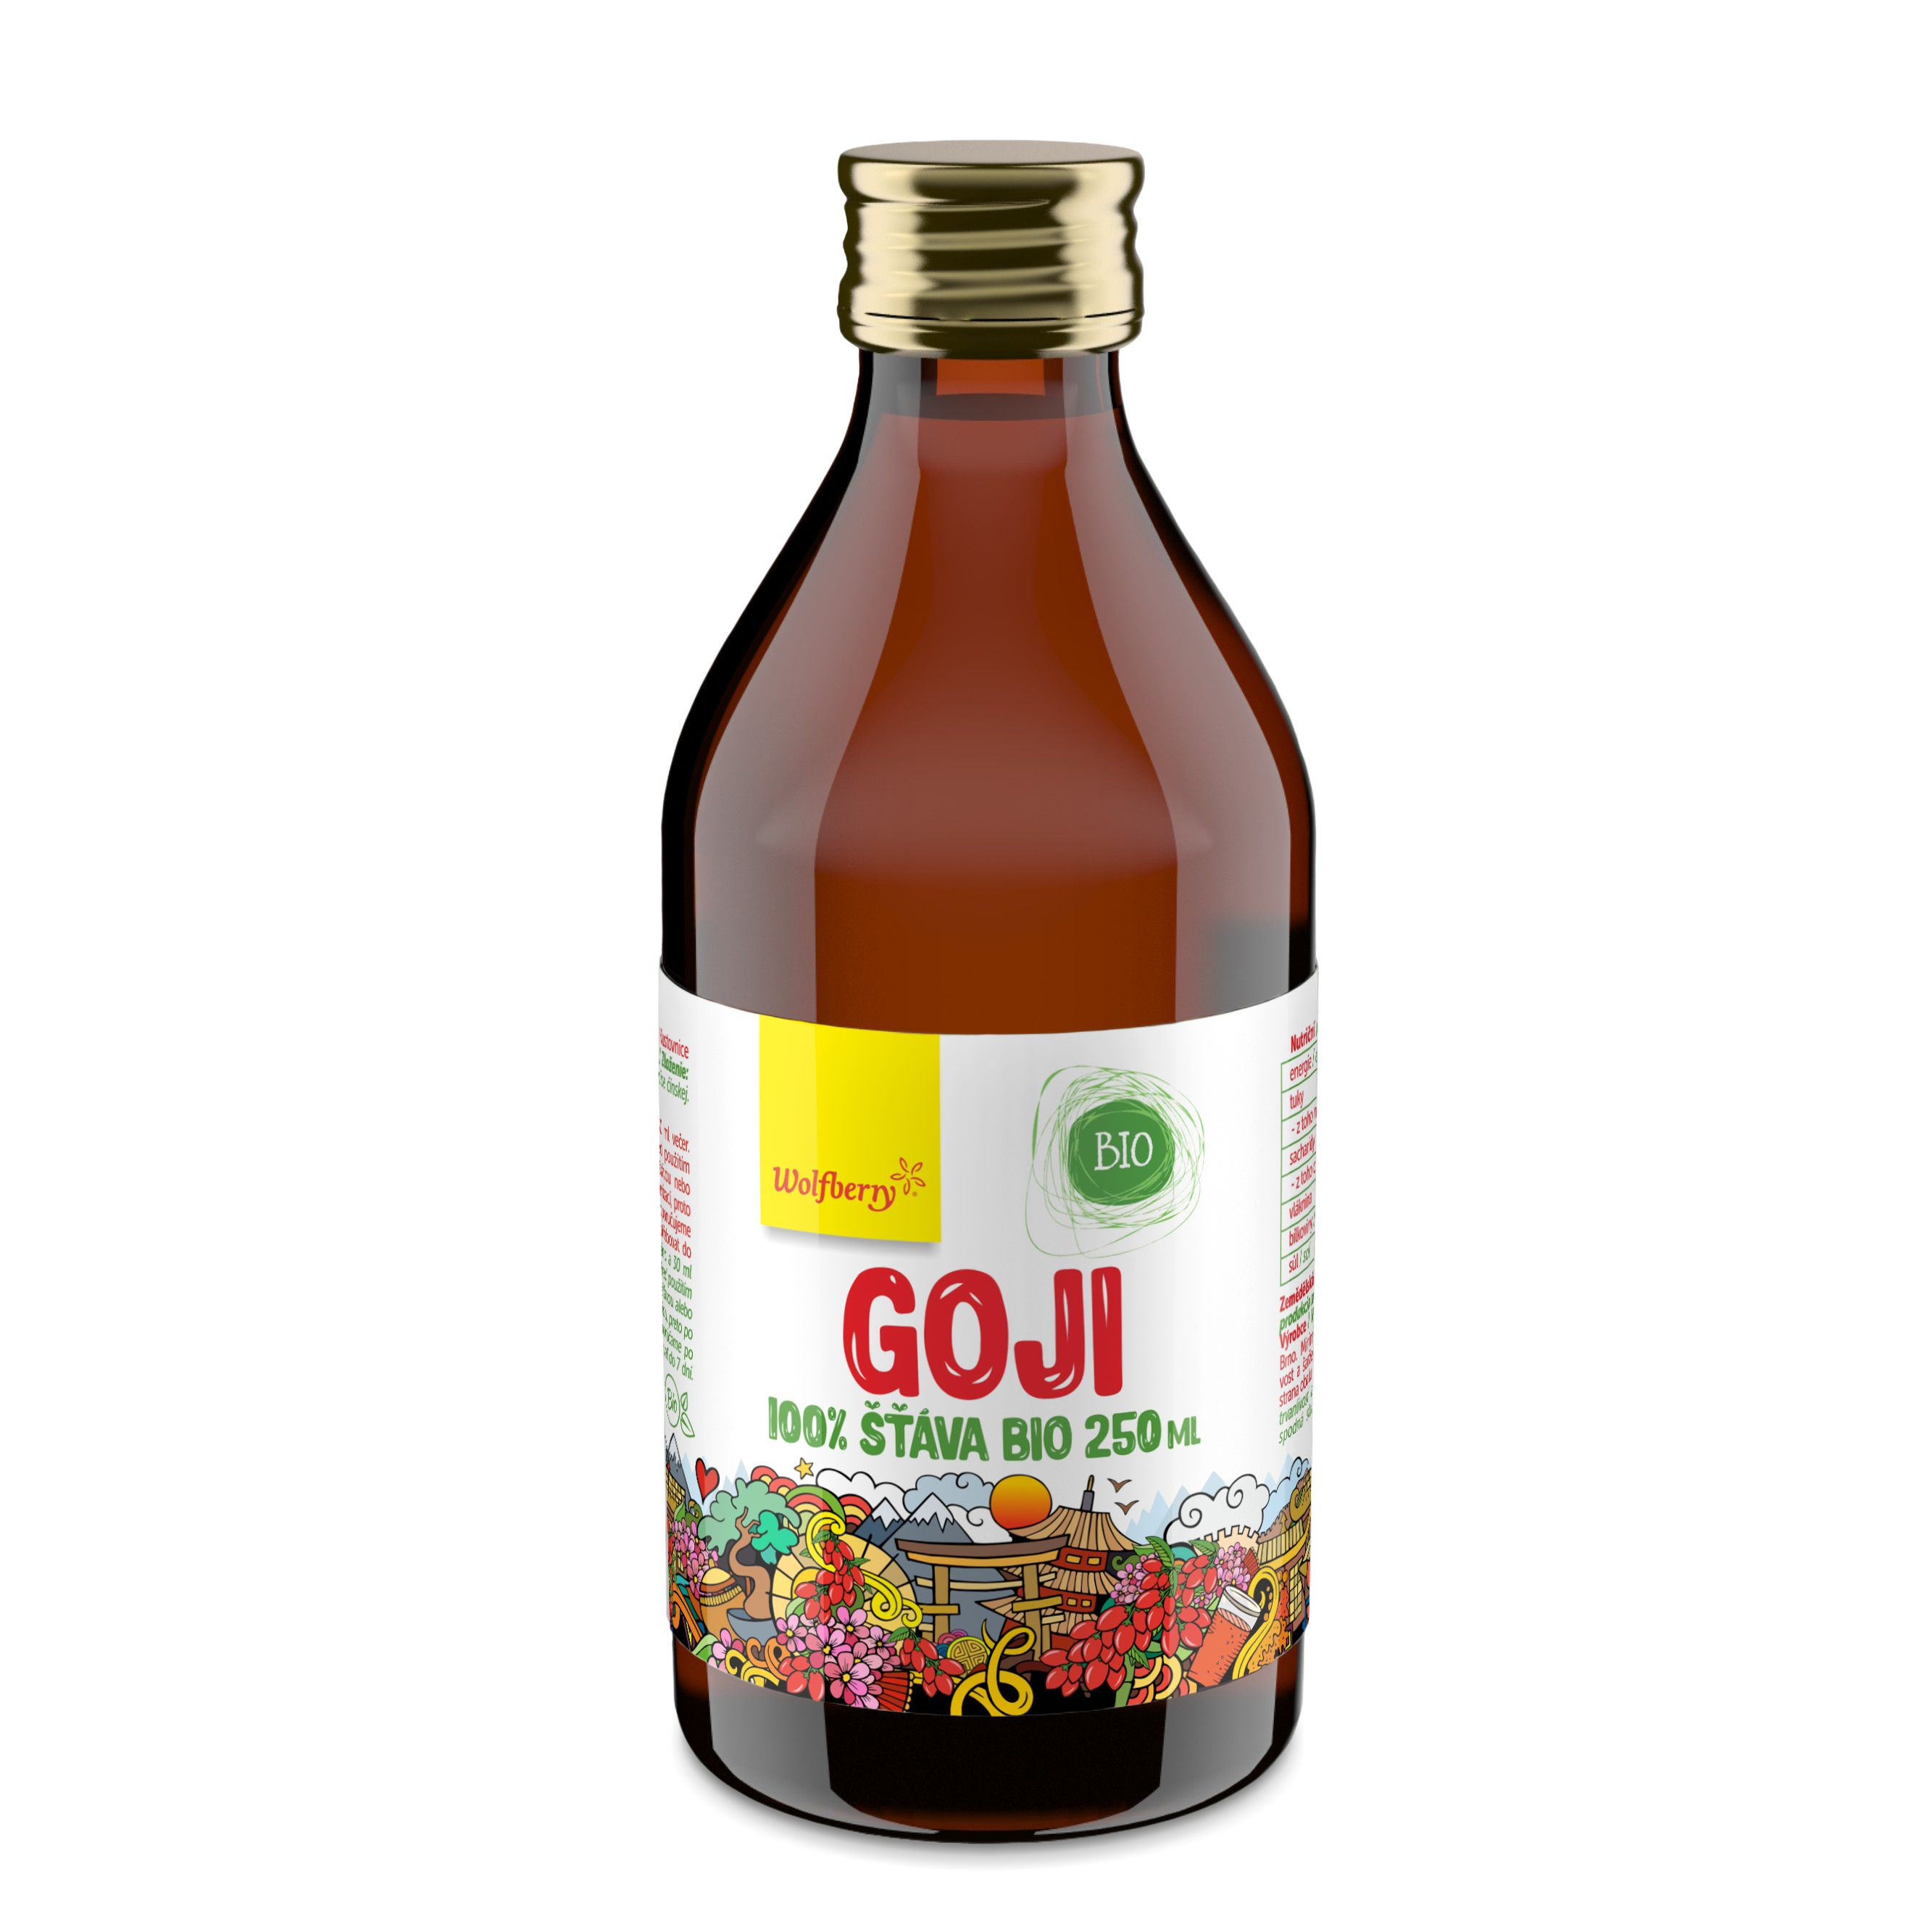 Wolfberry WF Goji šťava BIO 250 ml Wolfberry * 250 ml